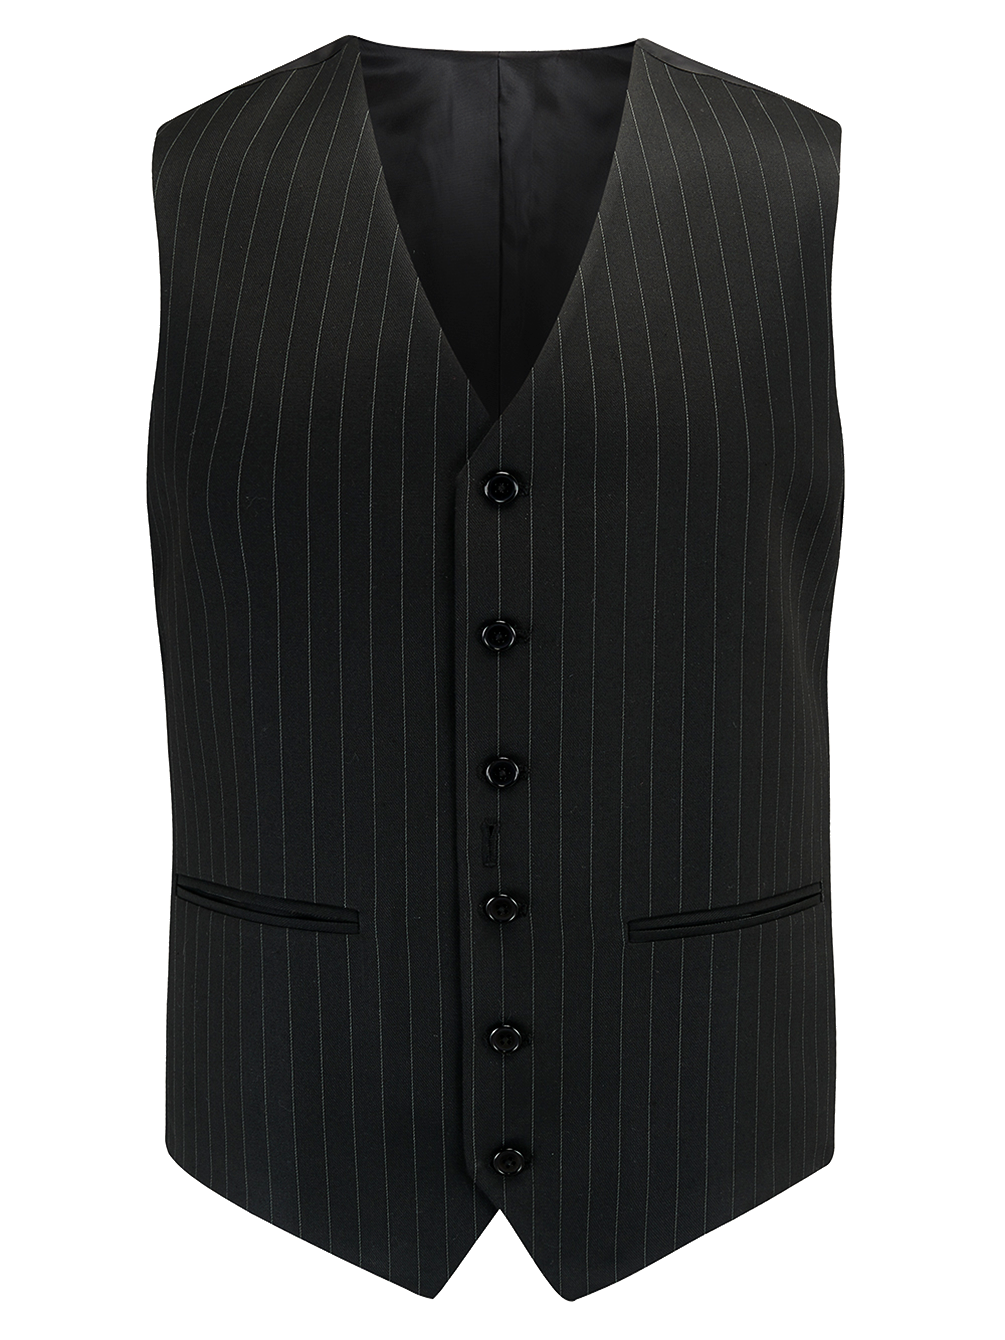 Mens Waistcoat in Black Pinstripe, 1940's Vintage Style by The Seamstress of Bloomsbury